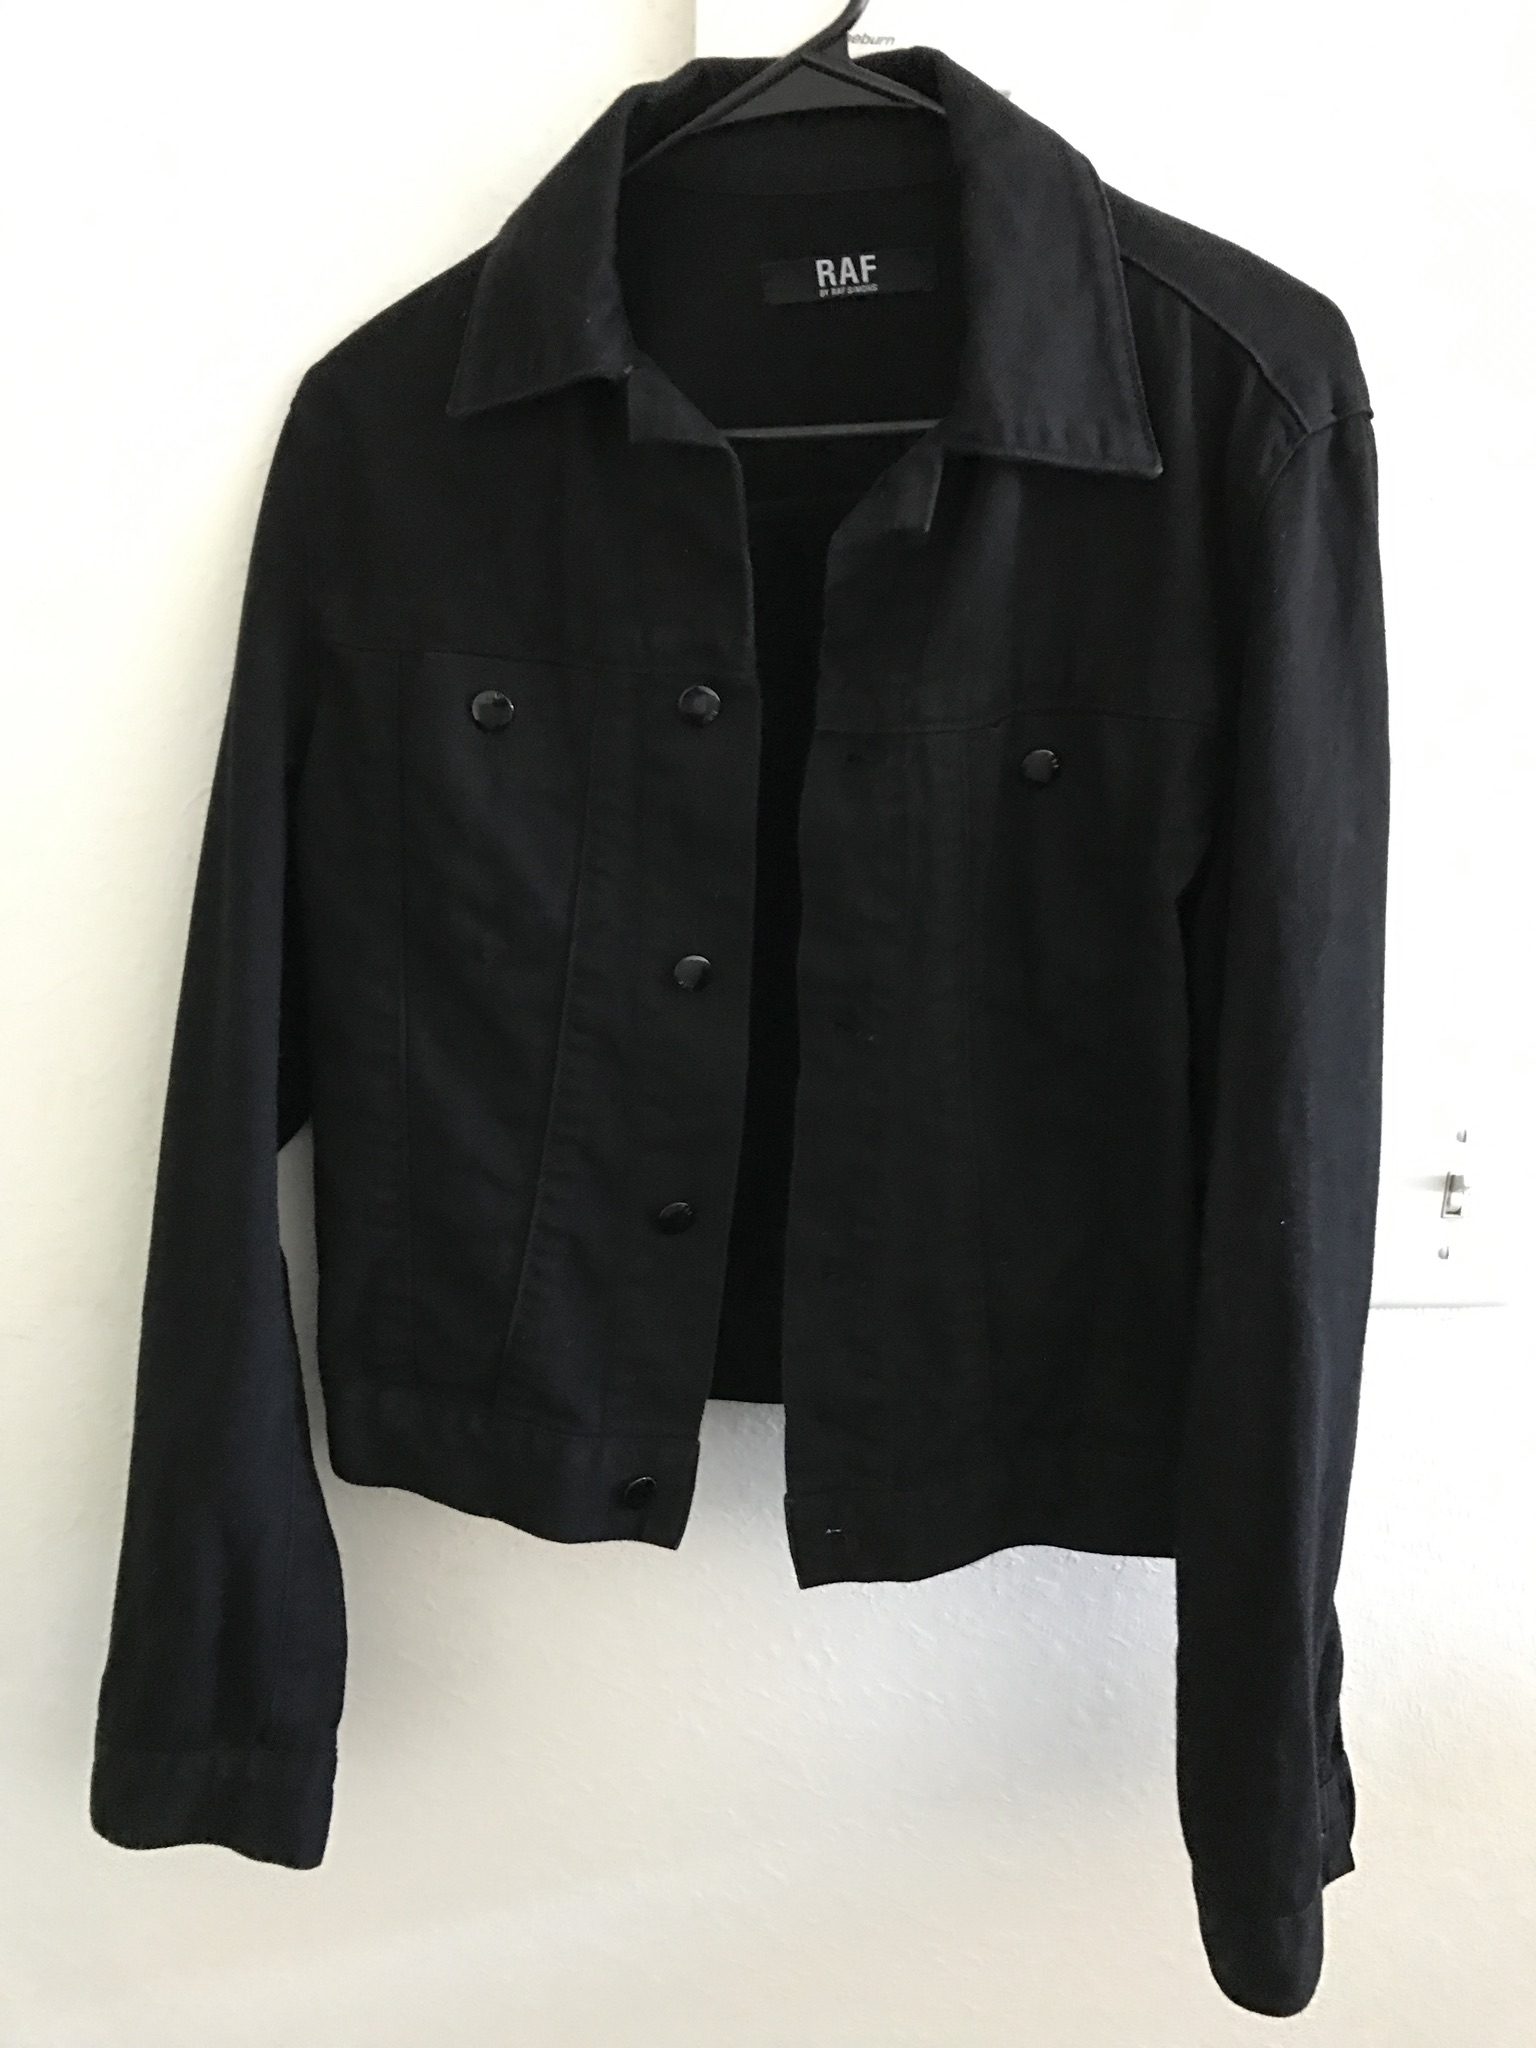 f27075fbc42 Raf Simons Raf Simons Black Denim Jacket Size s - Denim Jackets for ...